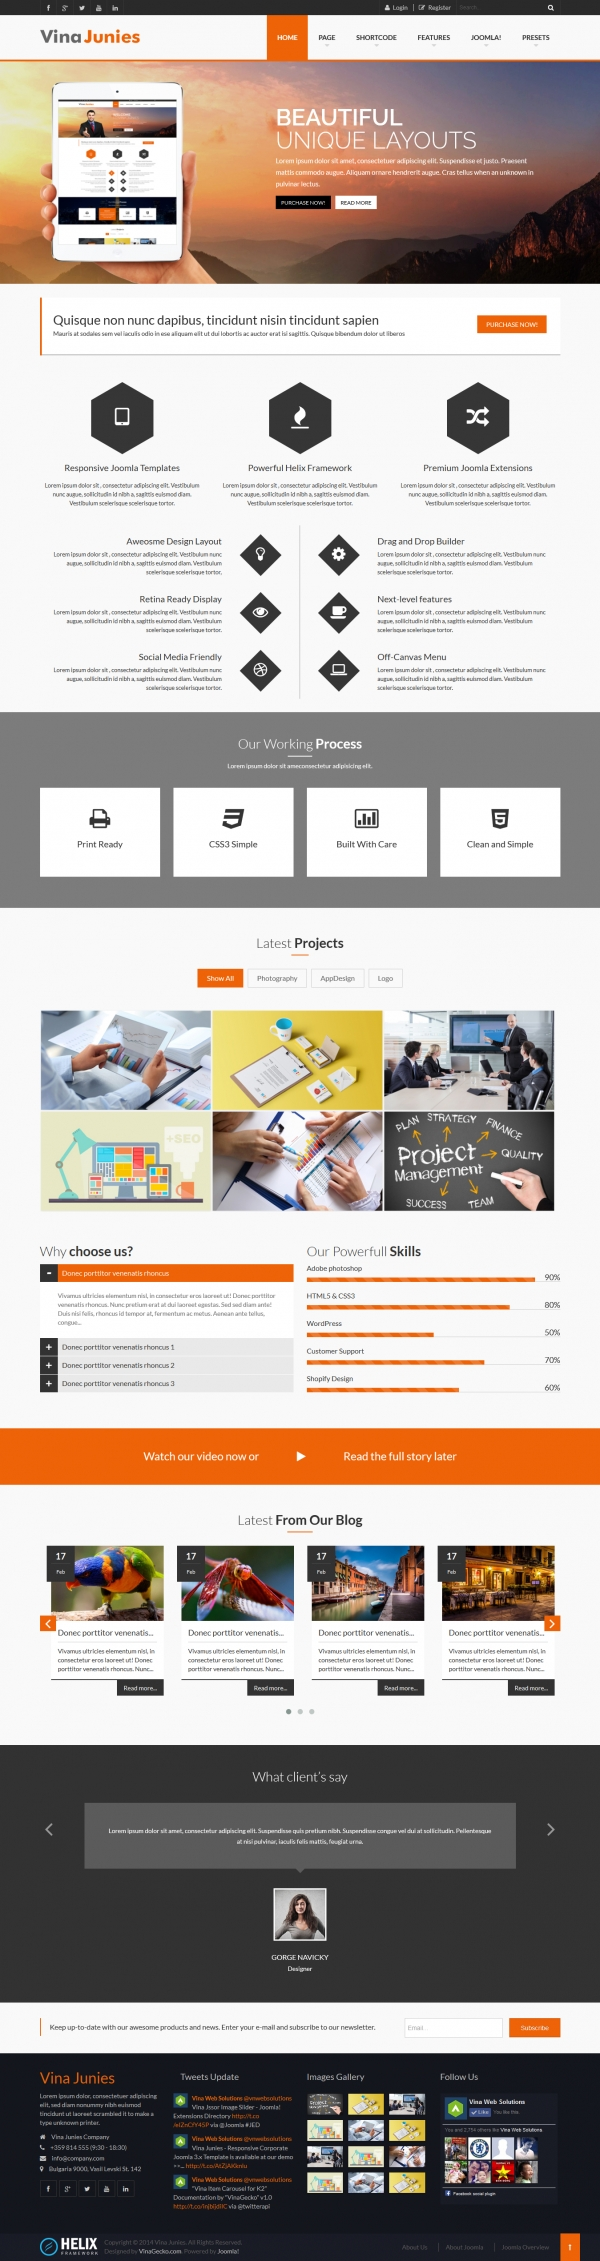 Vina Junies - Responsive Corporate Joomla 3.x Template